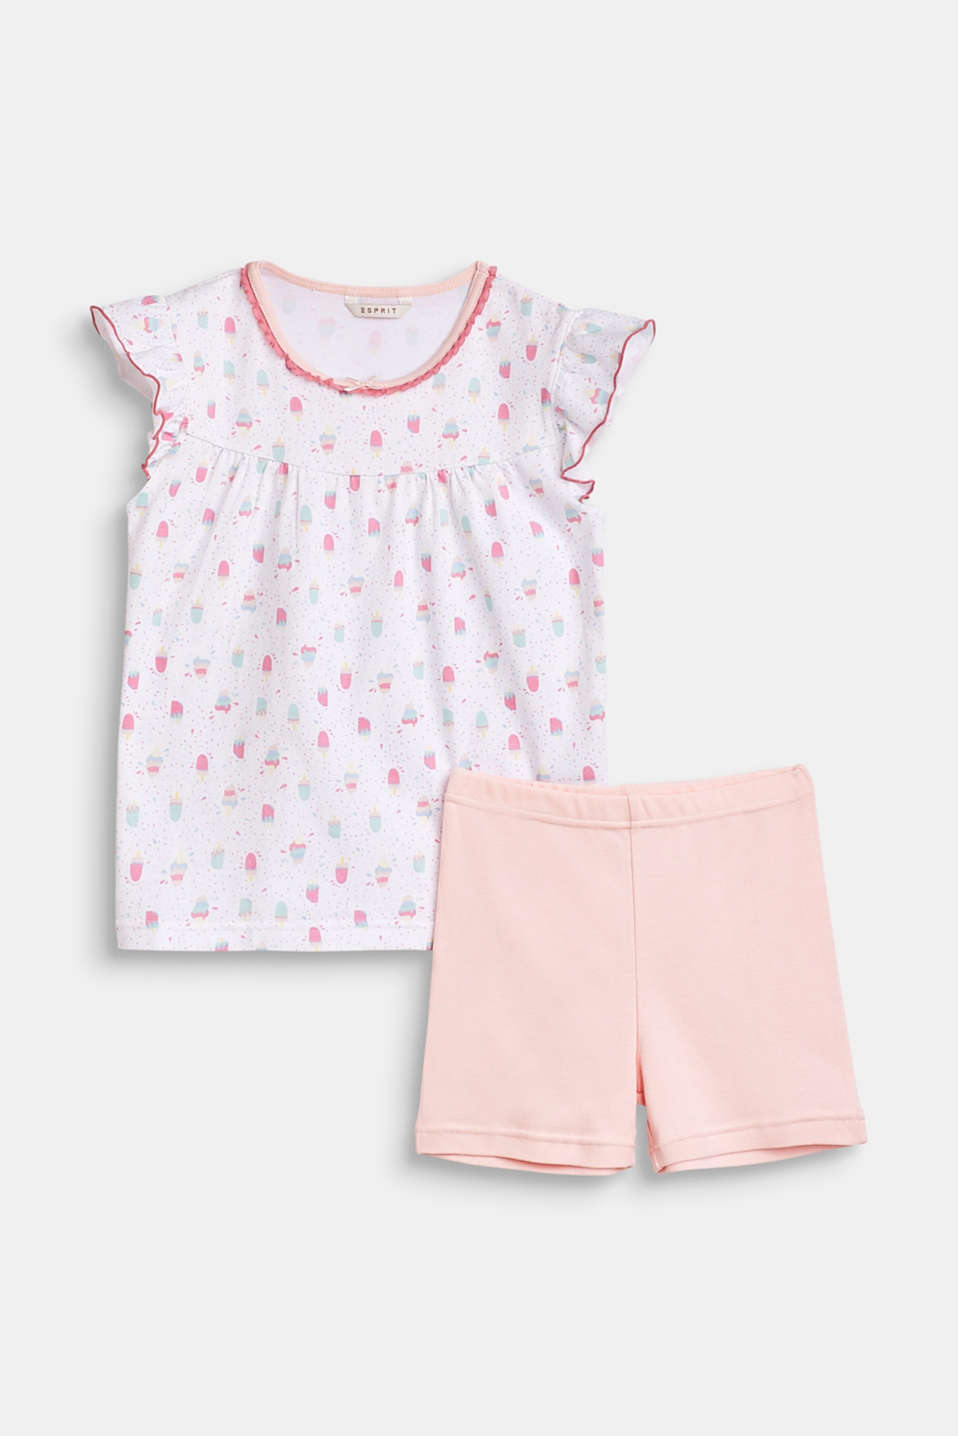 Esprit - Pyjamas top with an ice-cream pattern